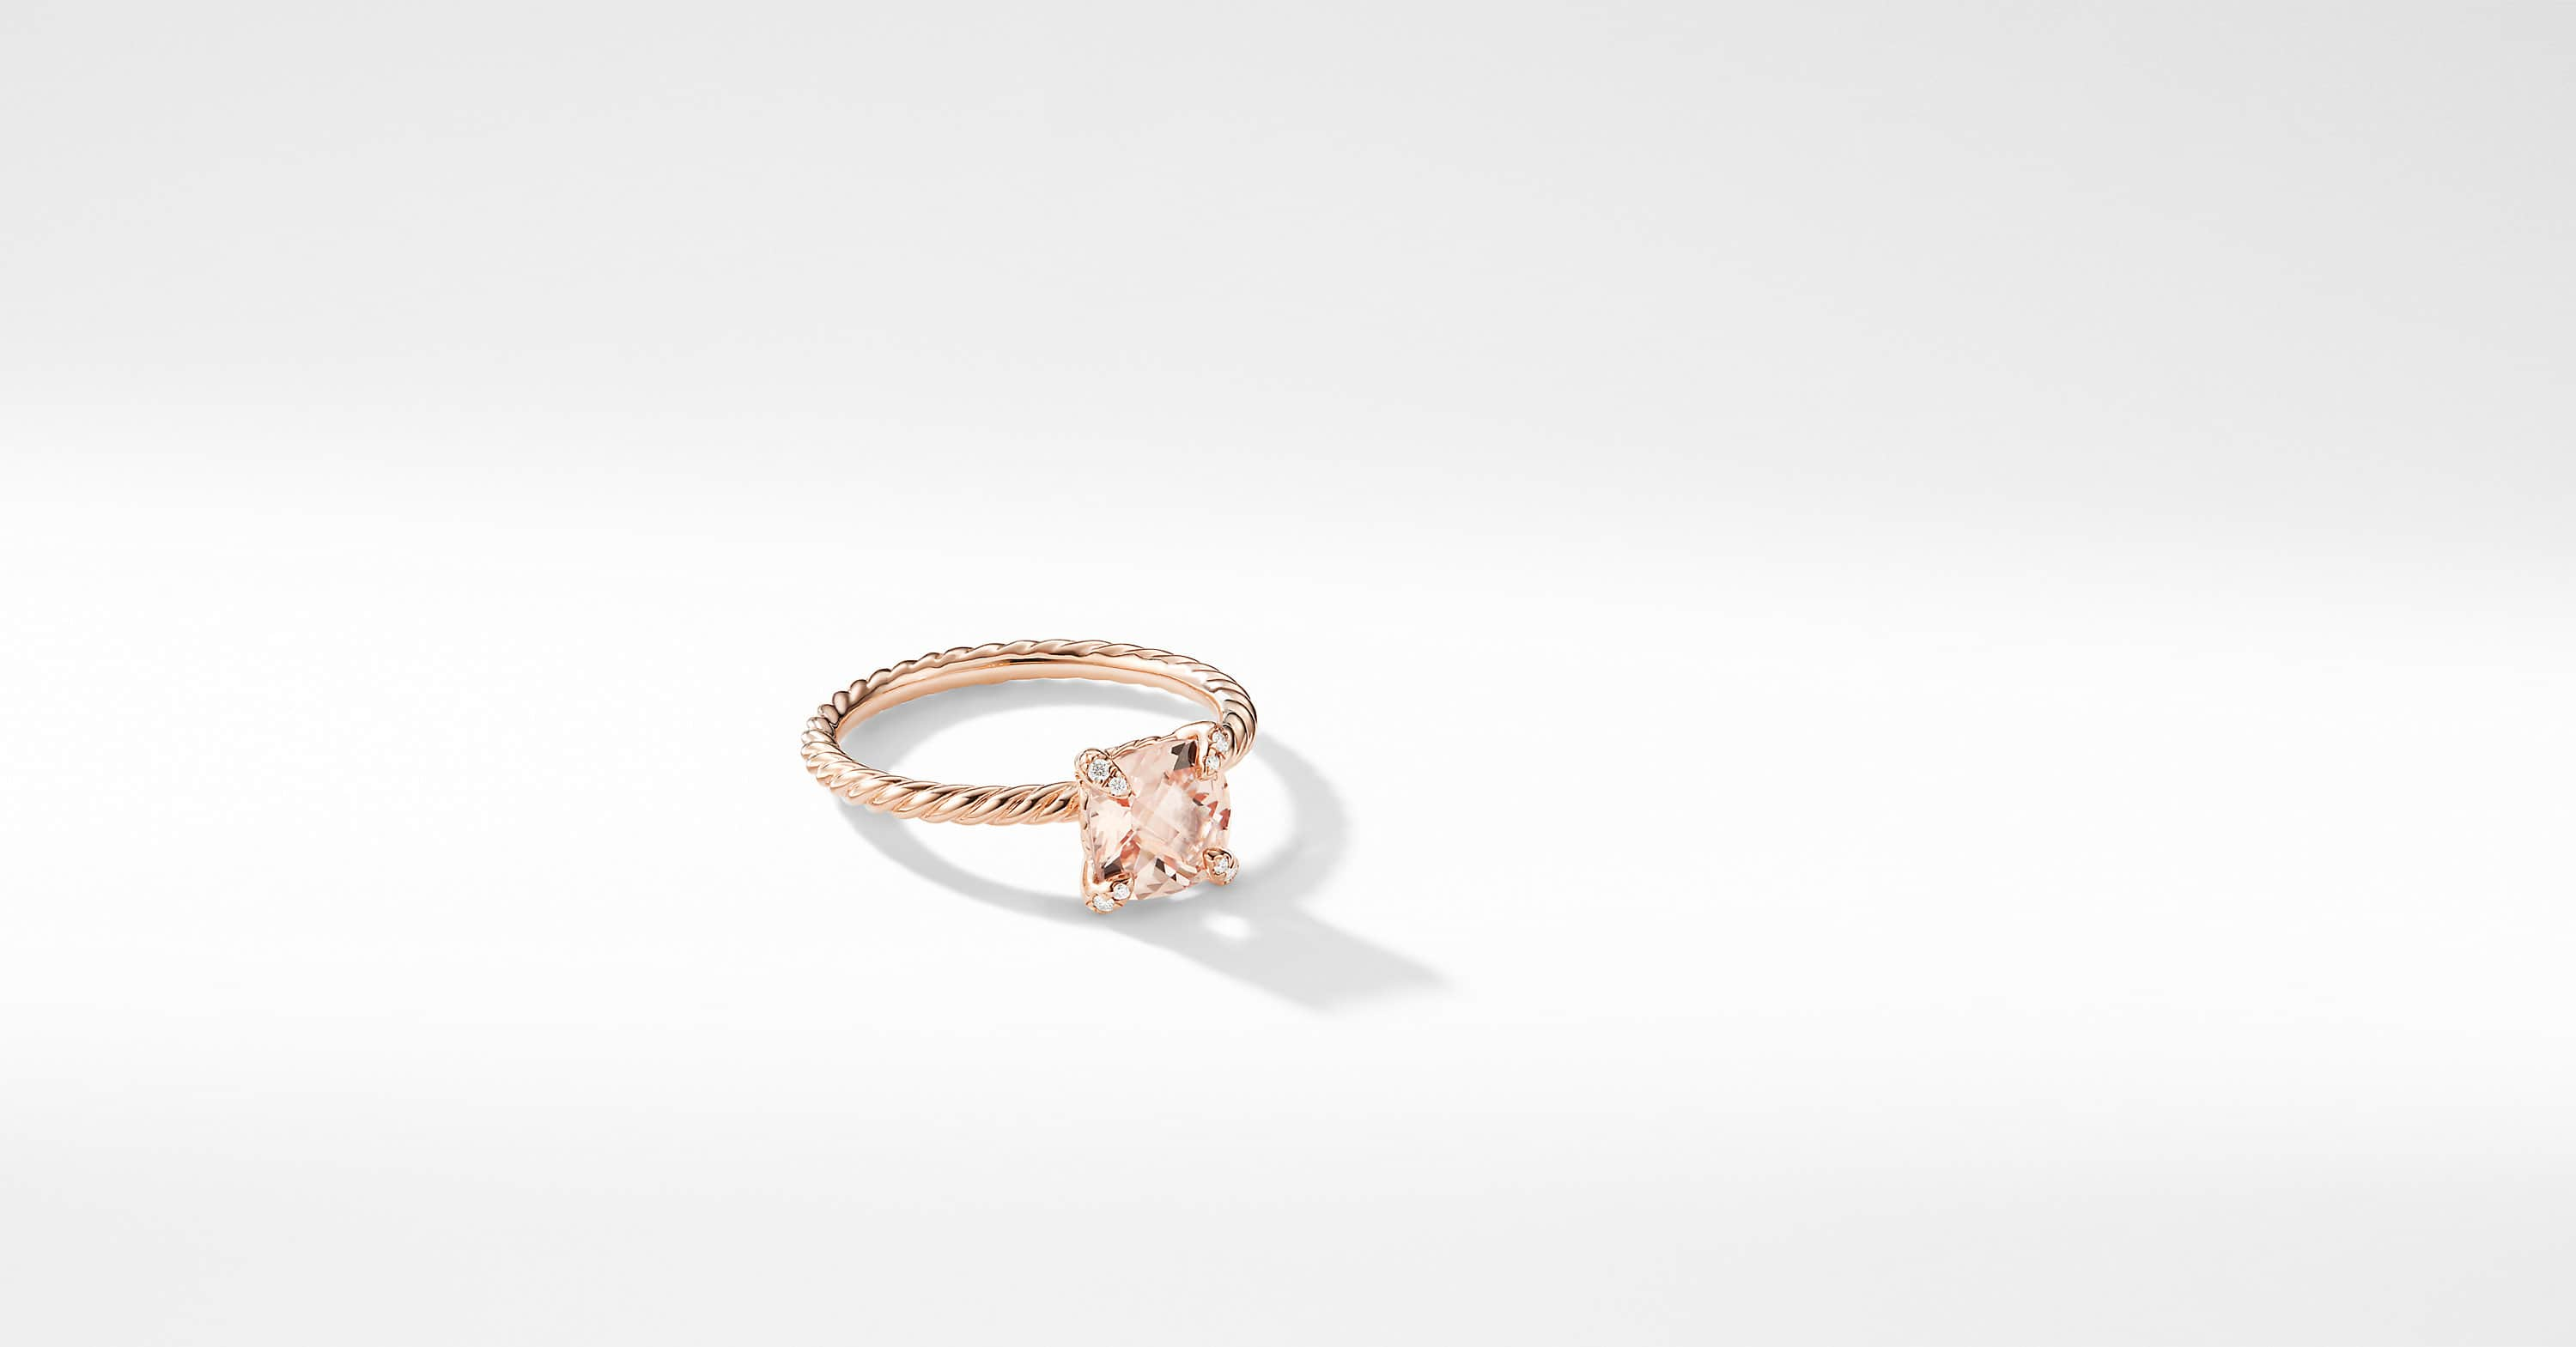 Bague Chatelaine avec diamants en or rose 18 carats, 7 mm